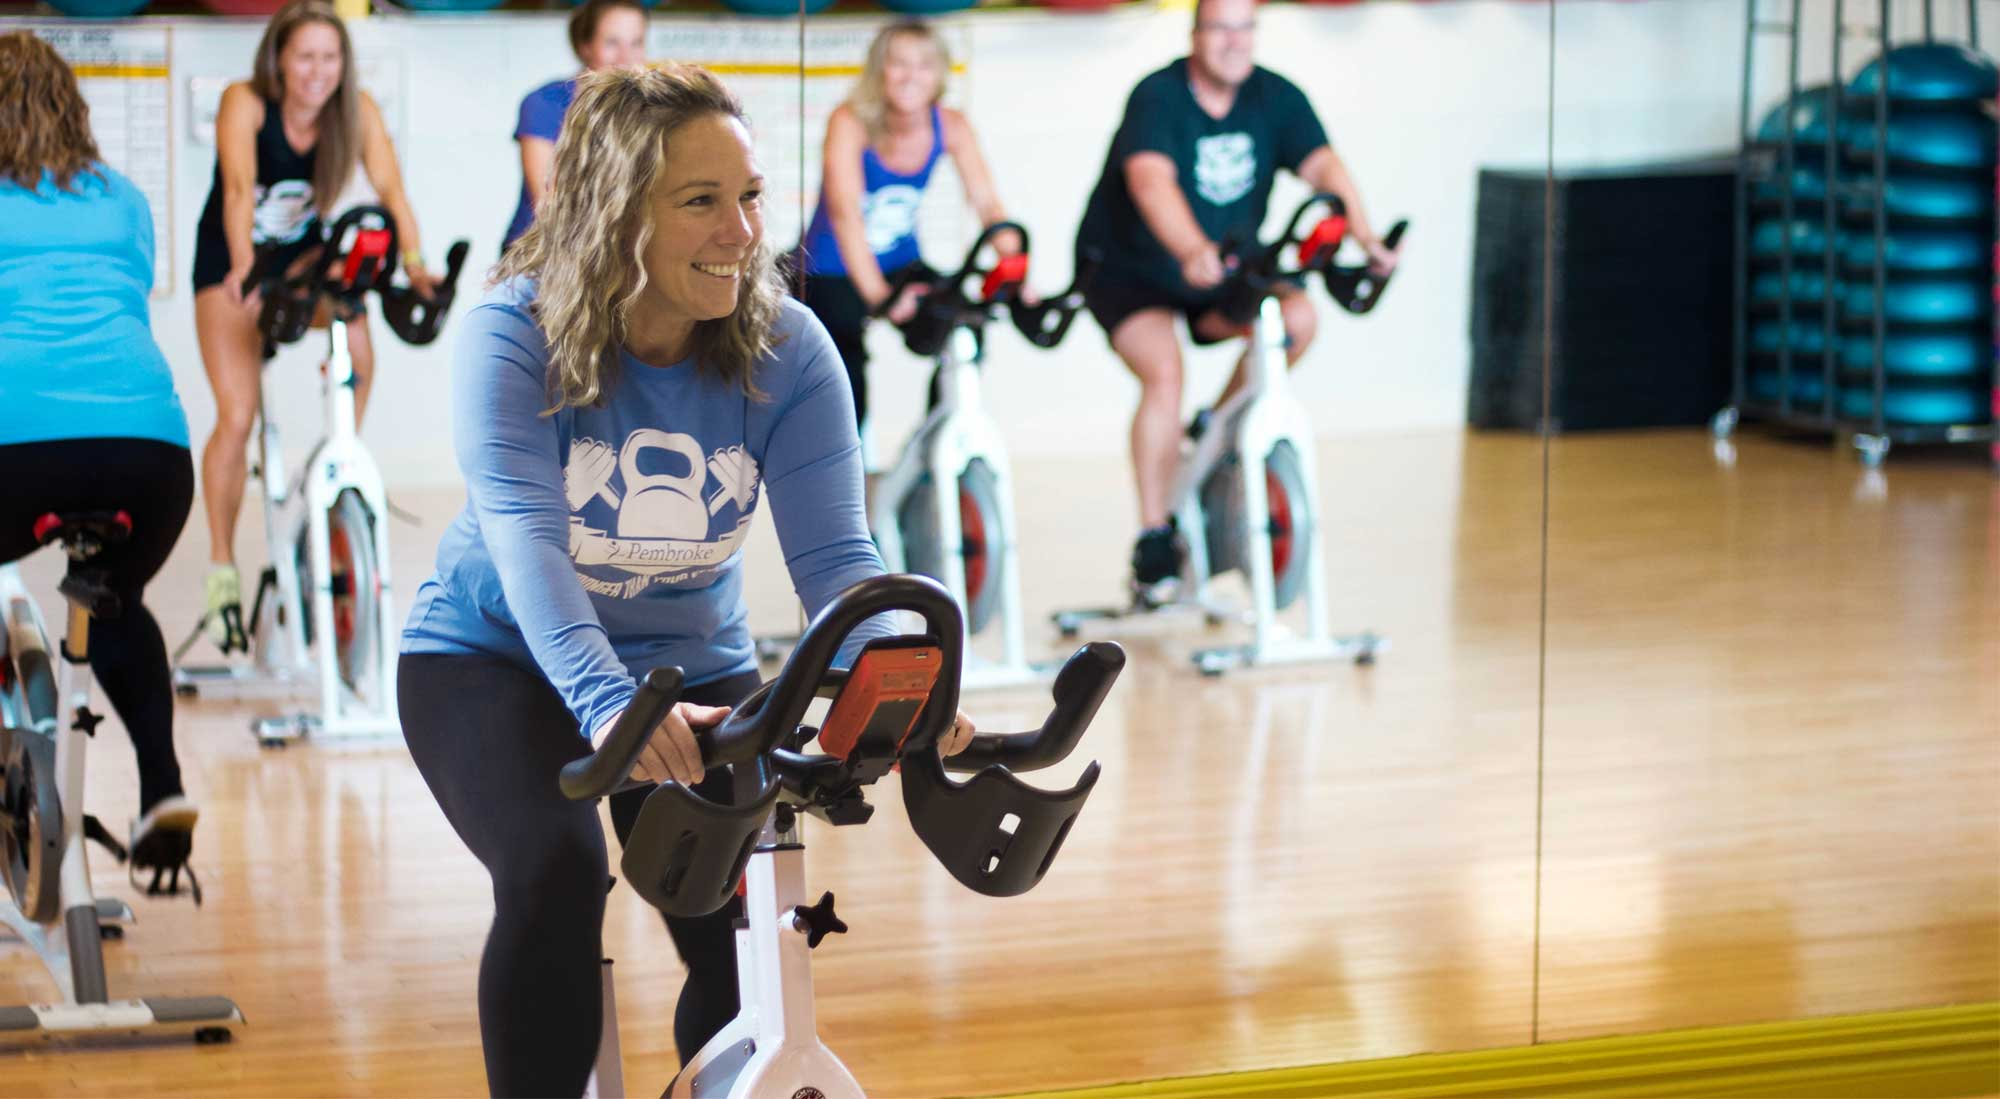 6,000 Square Foot Fitness Facilities